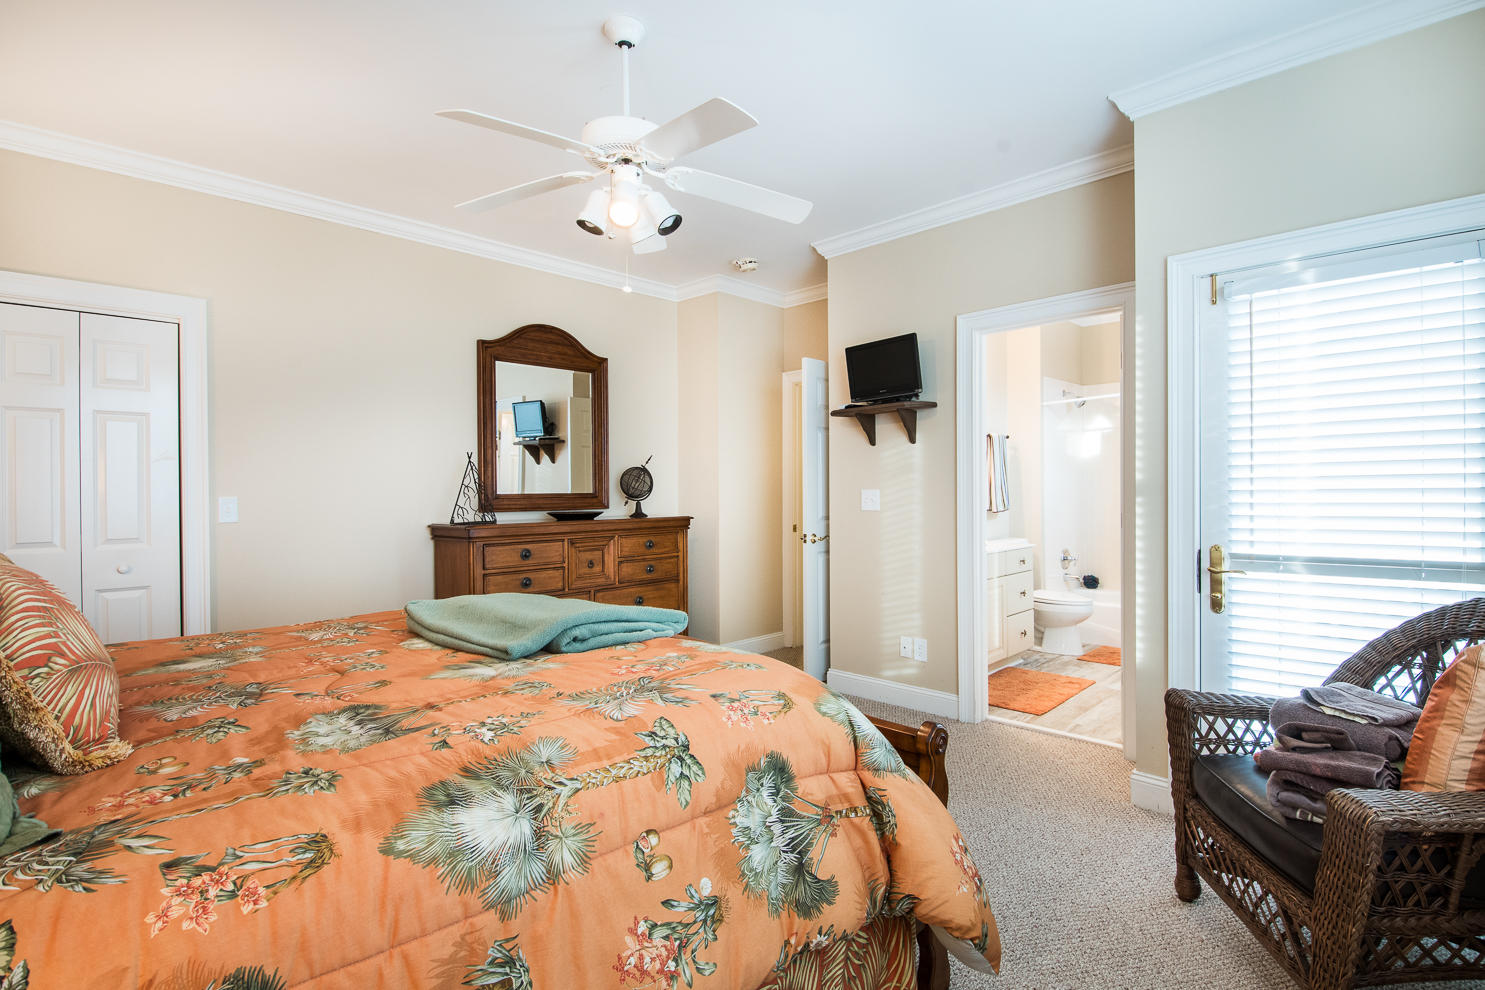 Tolers Cove Homes For Sale - B-4 & B-5 Tolers Cove Marina 70ft + Home, Mount Pleasant, SC - 4